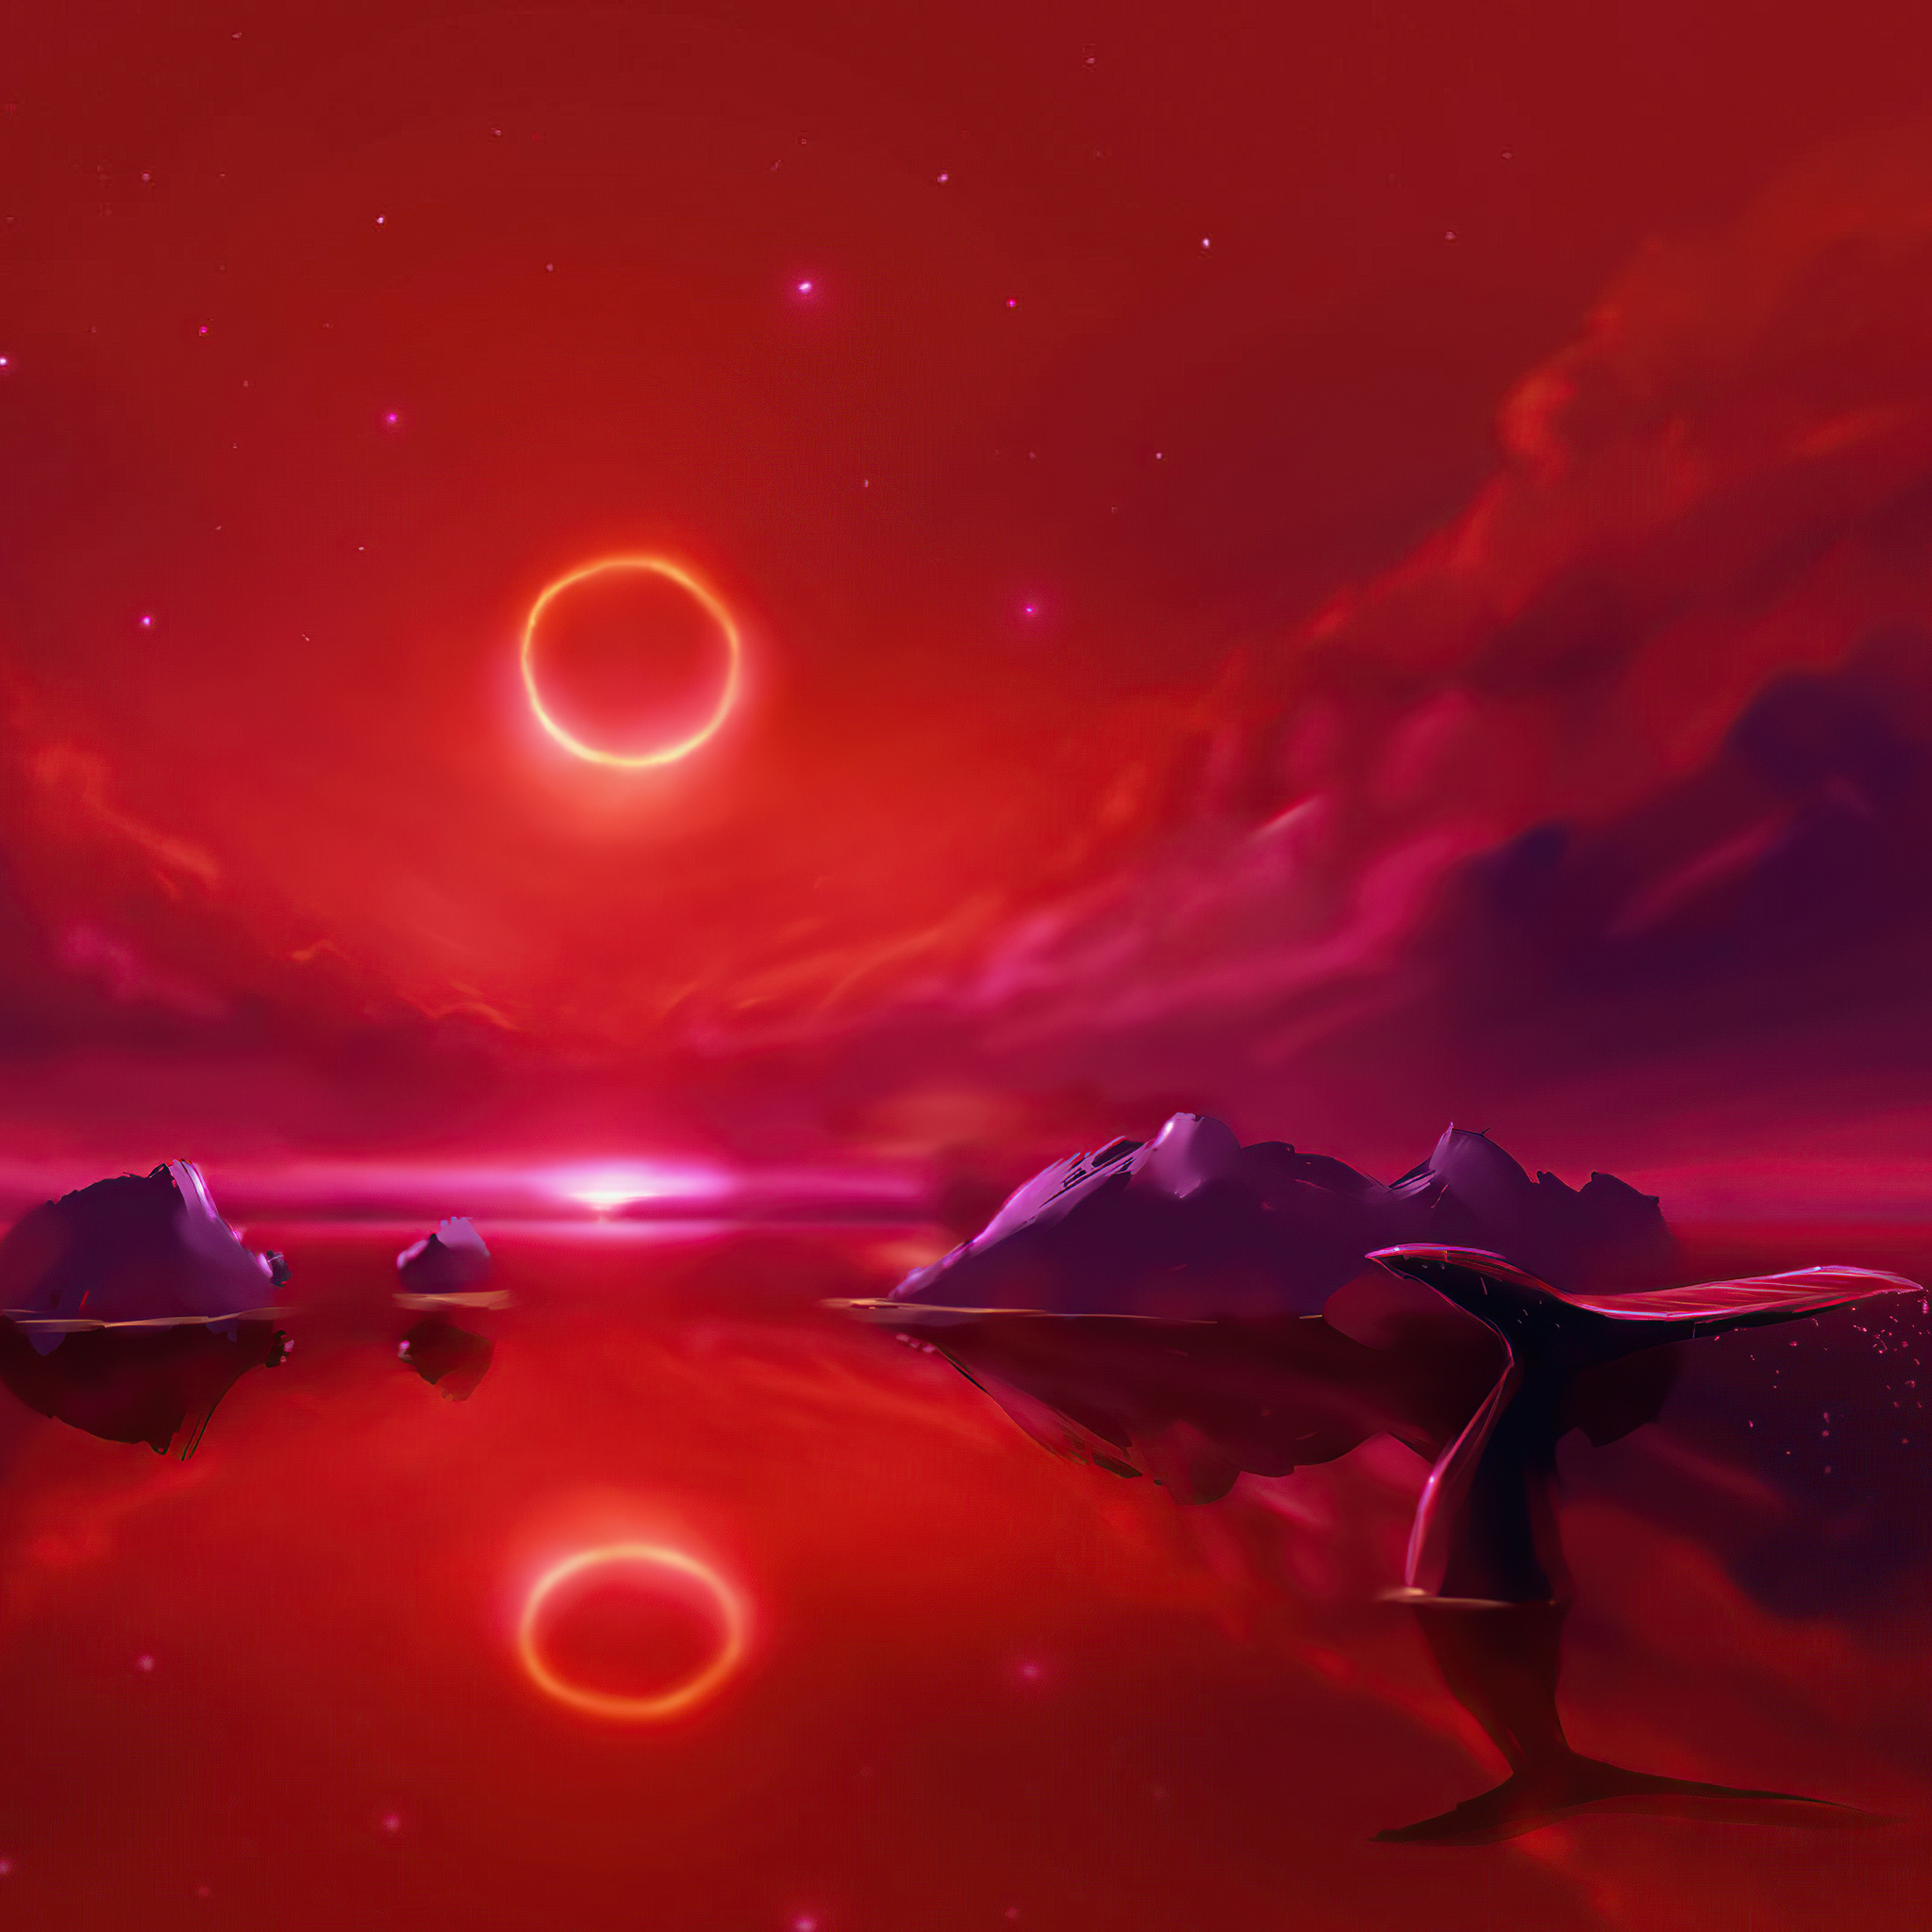 whale-and-a-ring-eclipse-wz.jpg